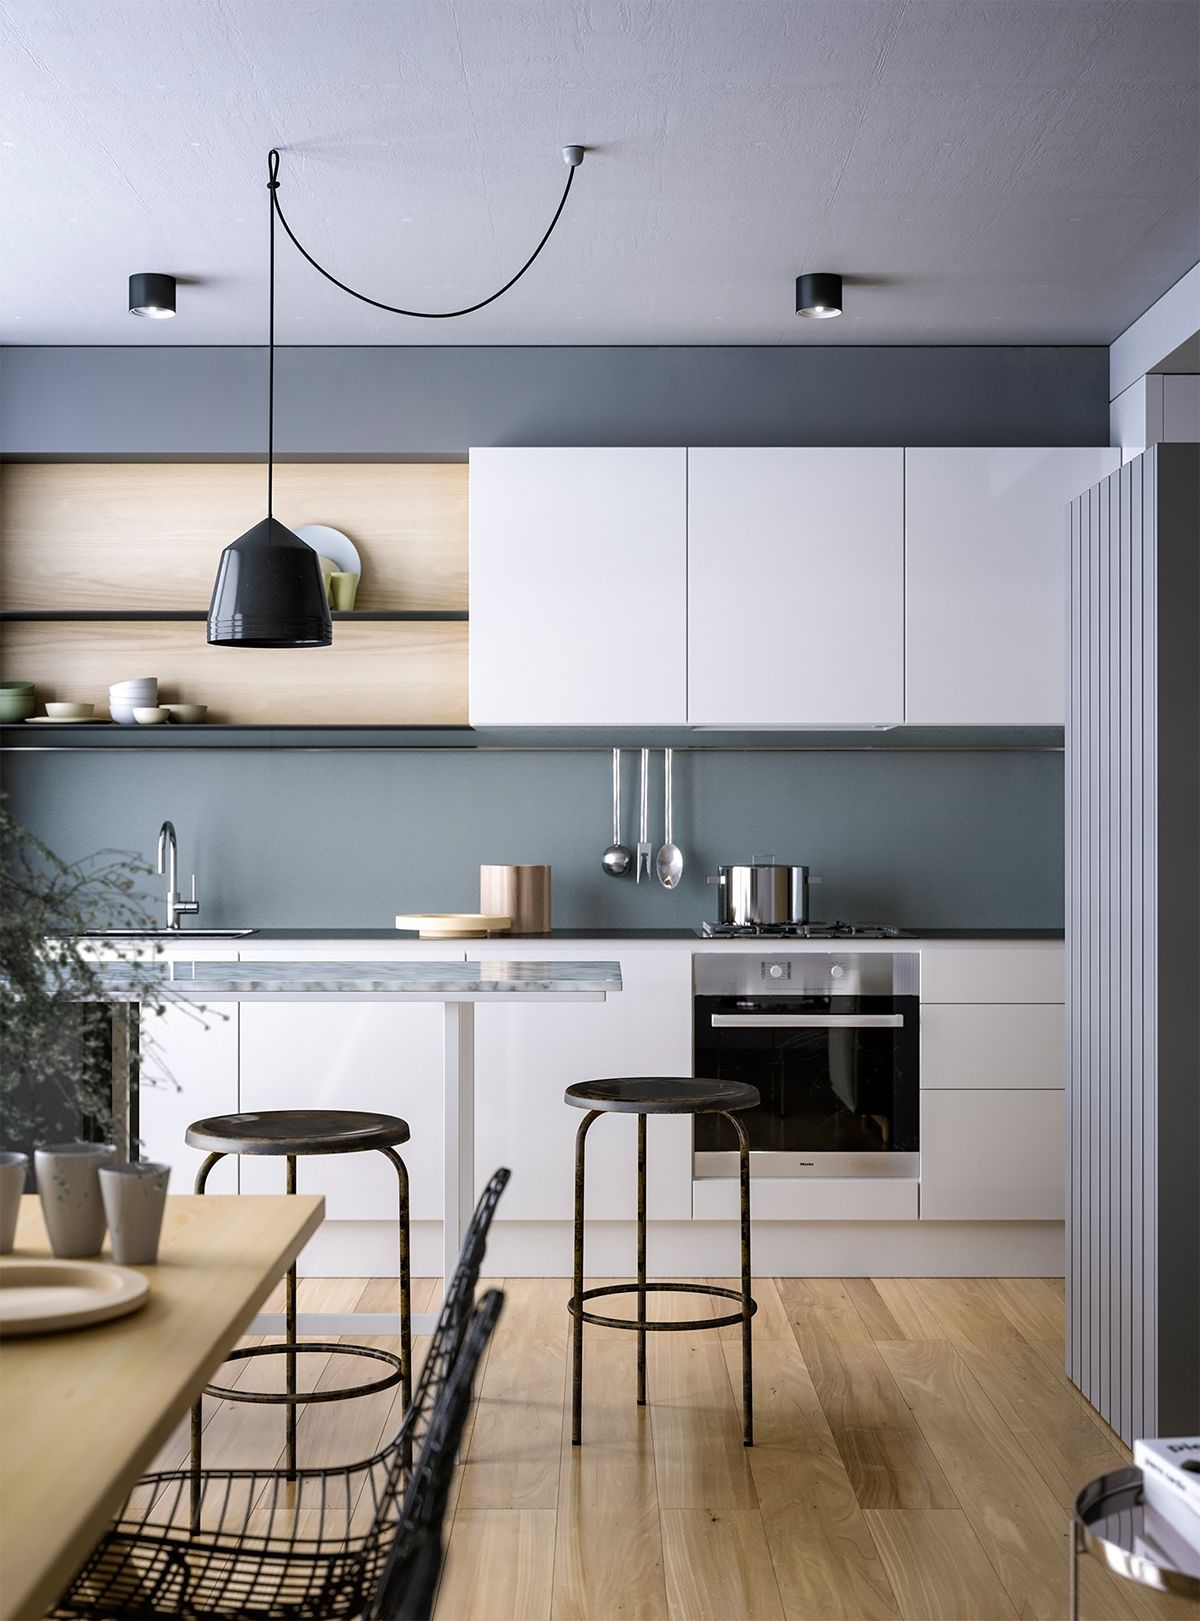 Neometro - Nine Smith St. on Behance | kitchen | Cocinas modernas ...